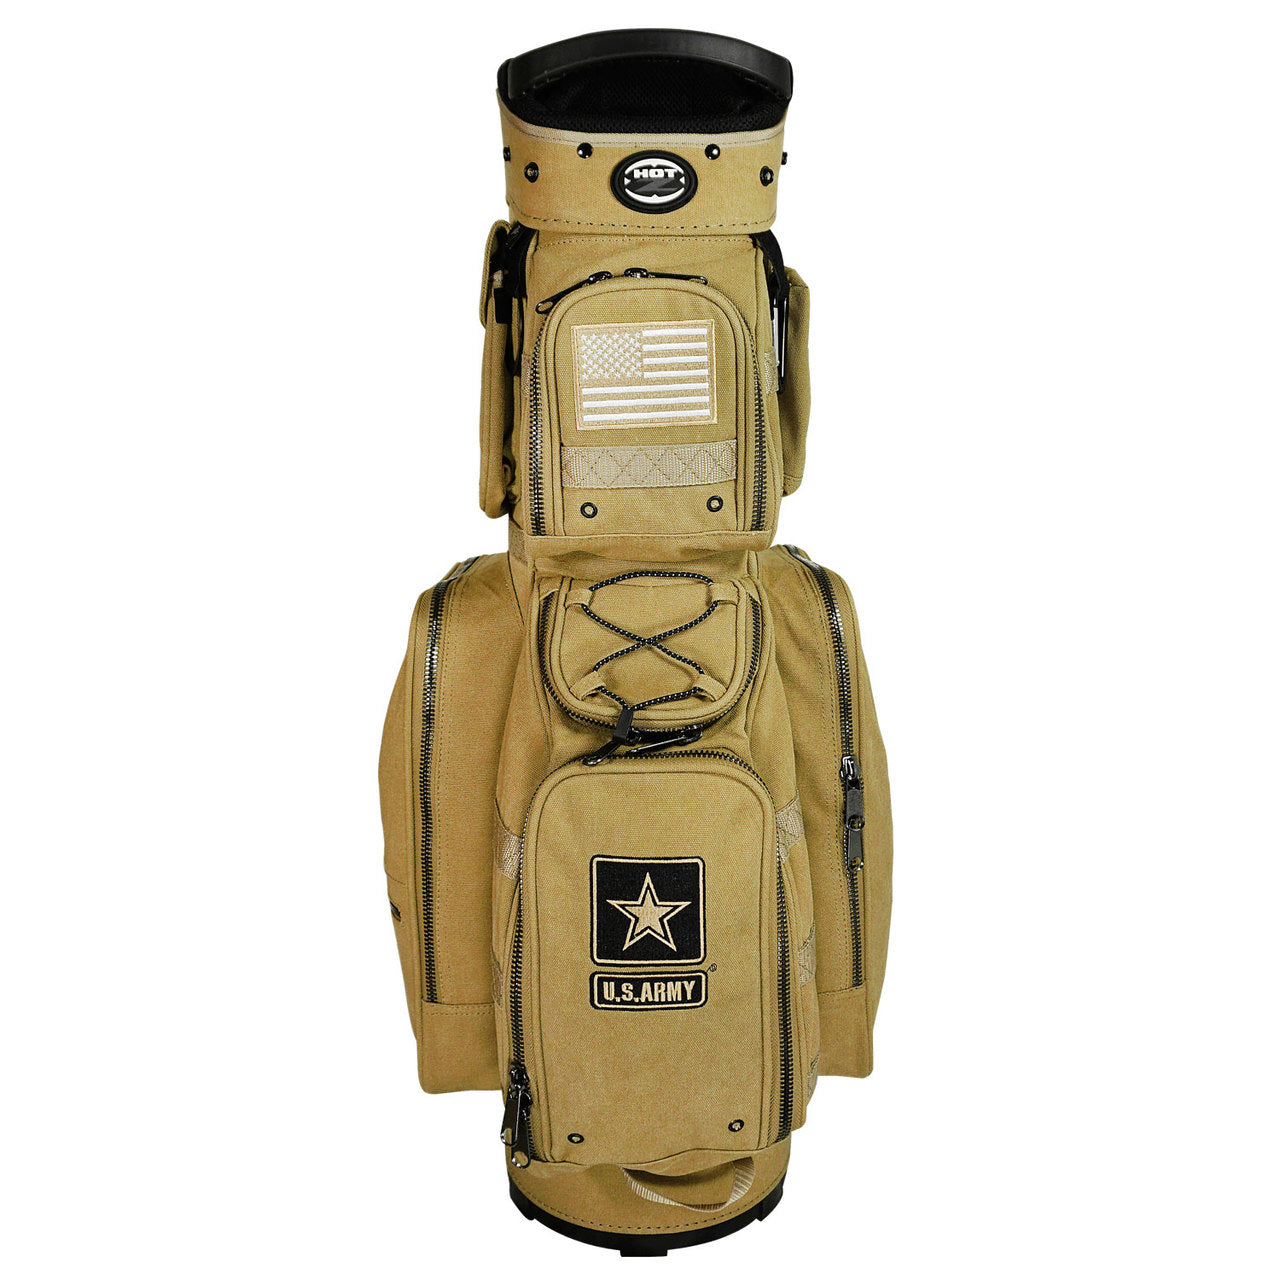 Hot-Z Military Active Duty Cart Bag